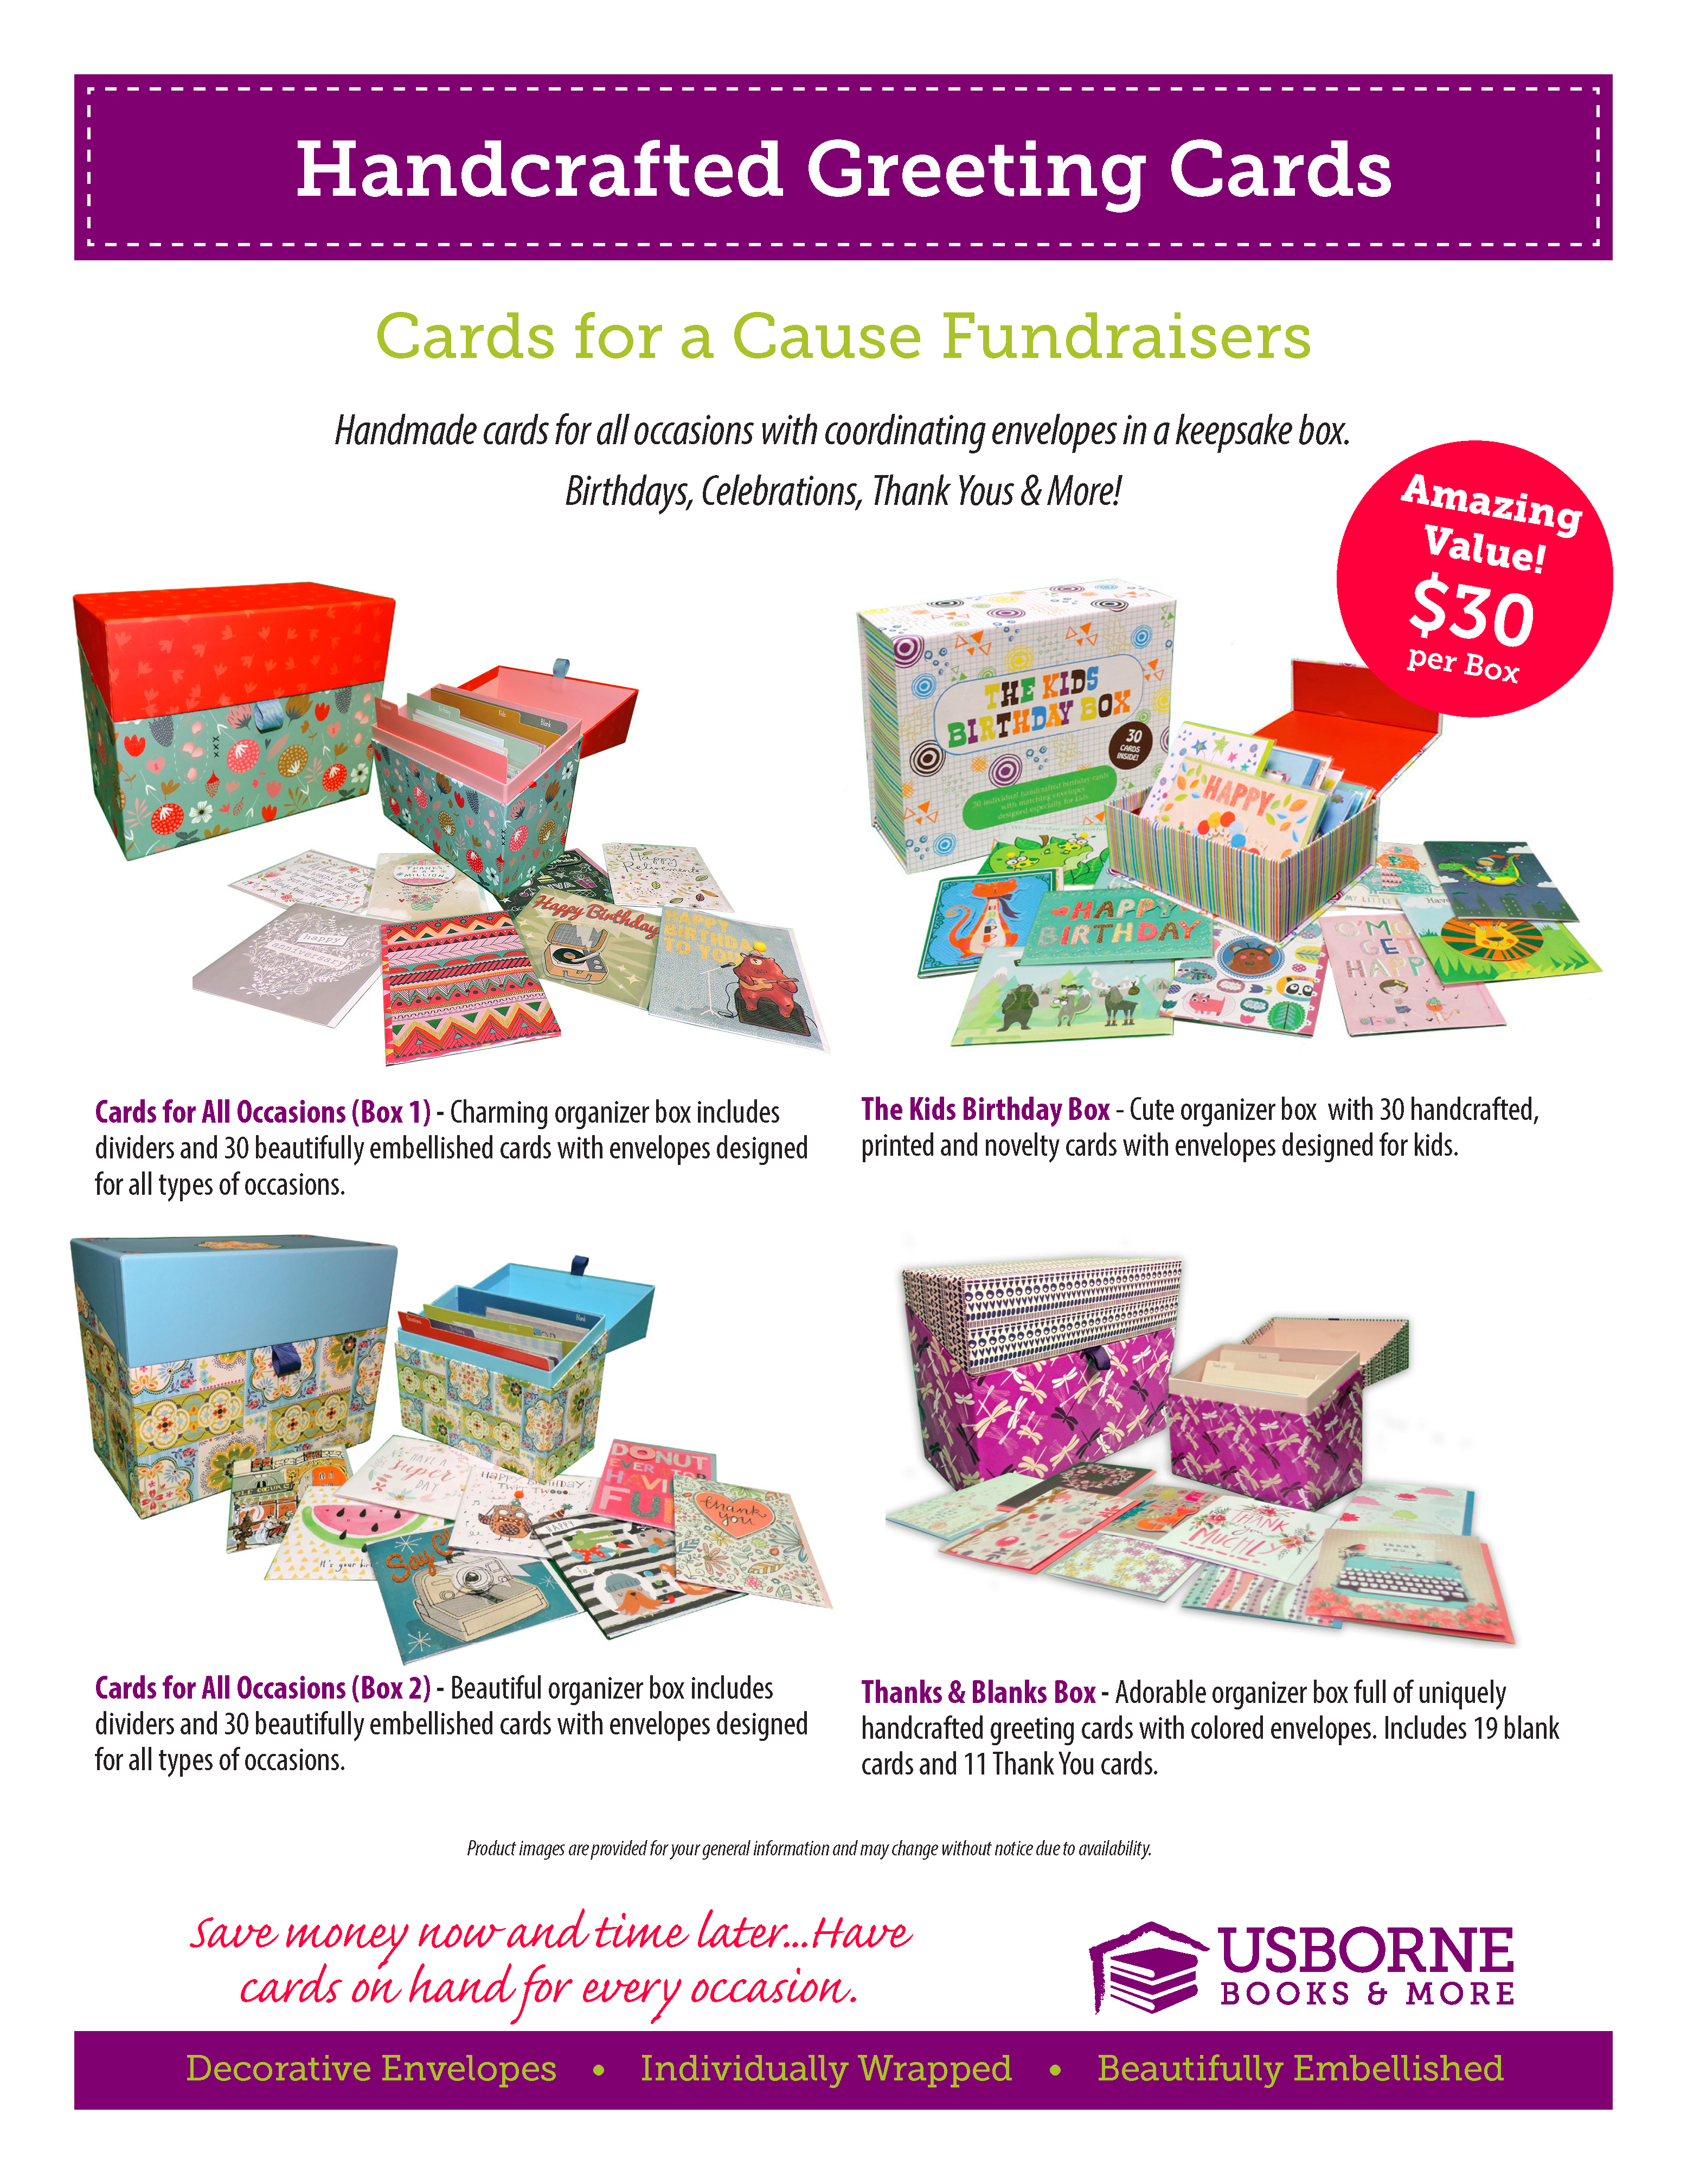 My awesome cousin, Shannon Soucie, has offered to provide us with this great fundraising opportunity again through Usborne Books Cards for a Cause program.